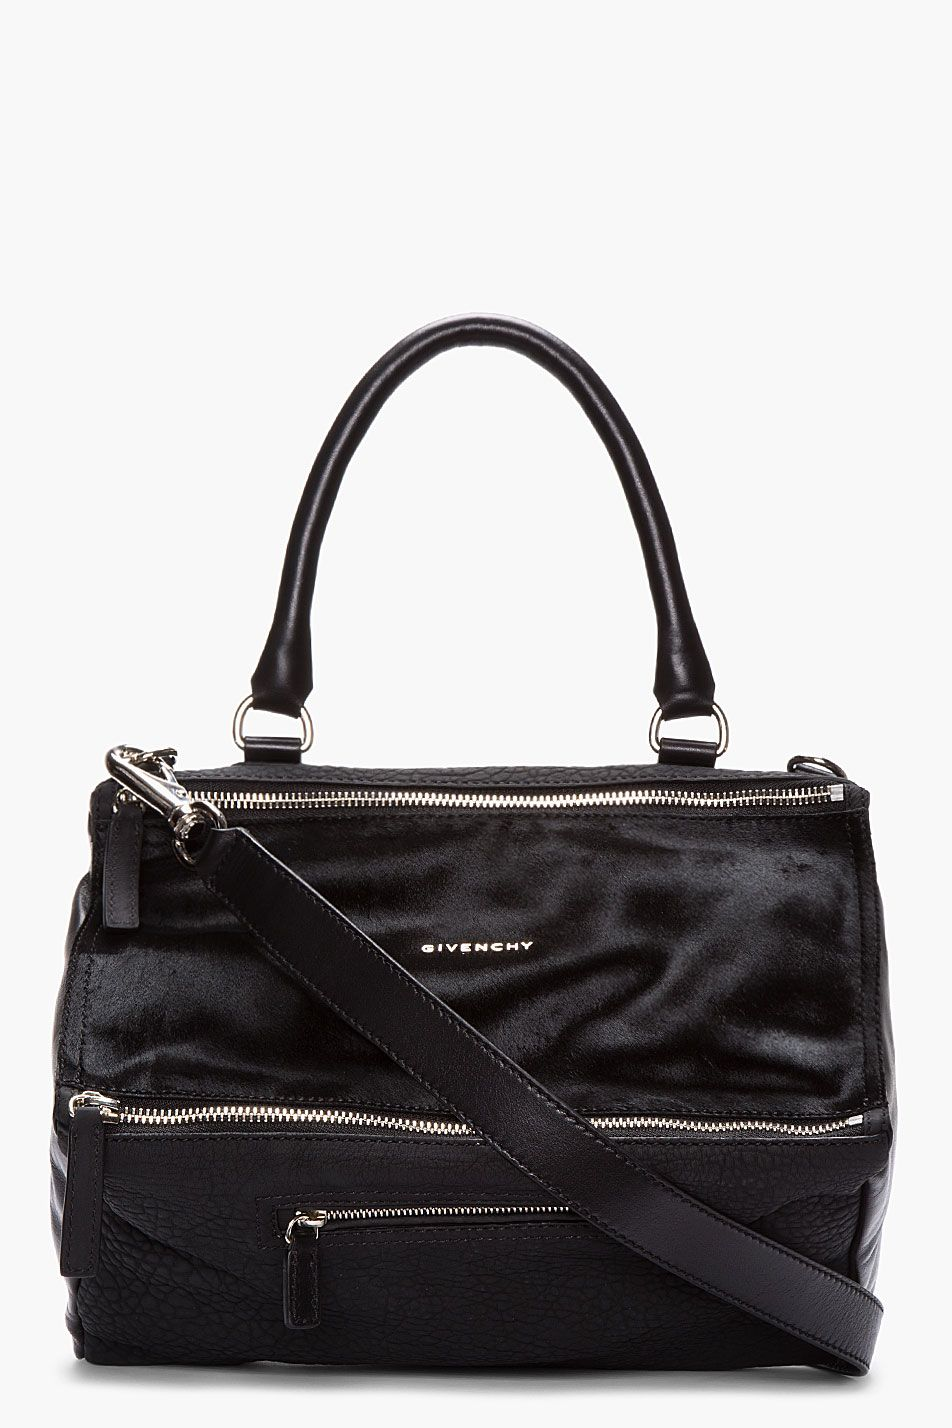 8d91a14ead GIVENCHY Black calf-hair Textured Leather Pandora bag